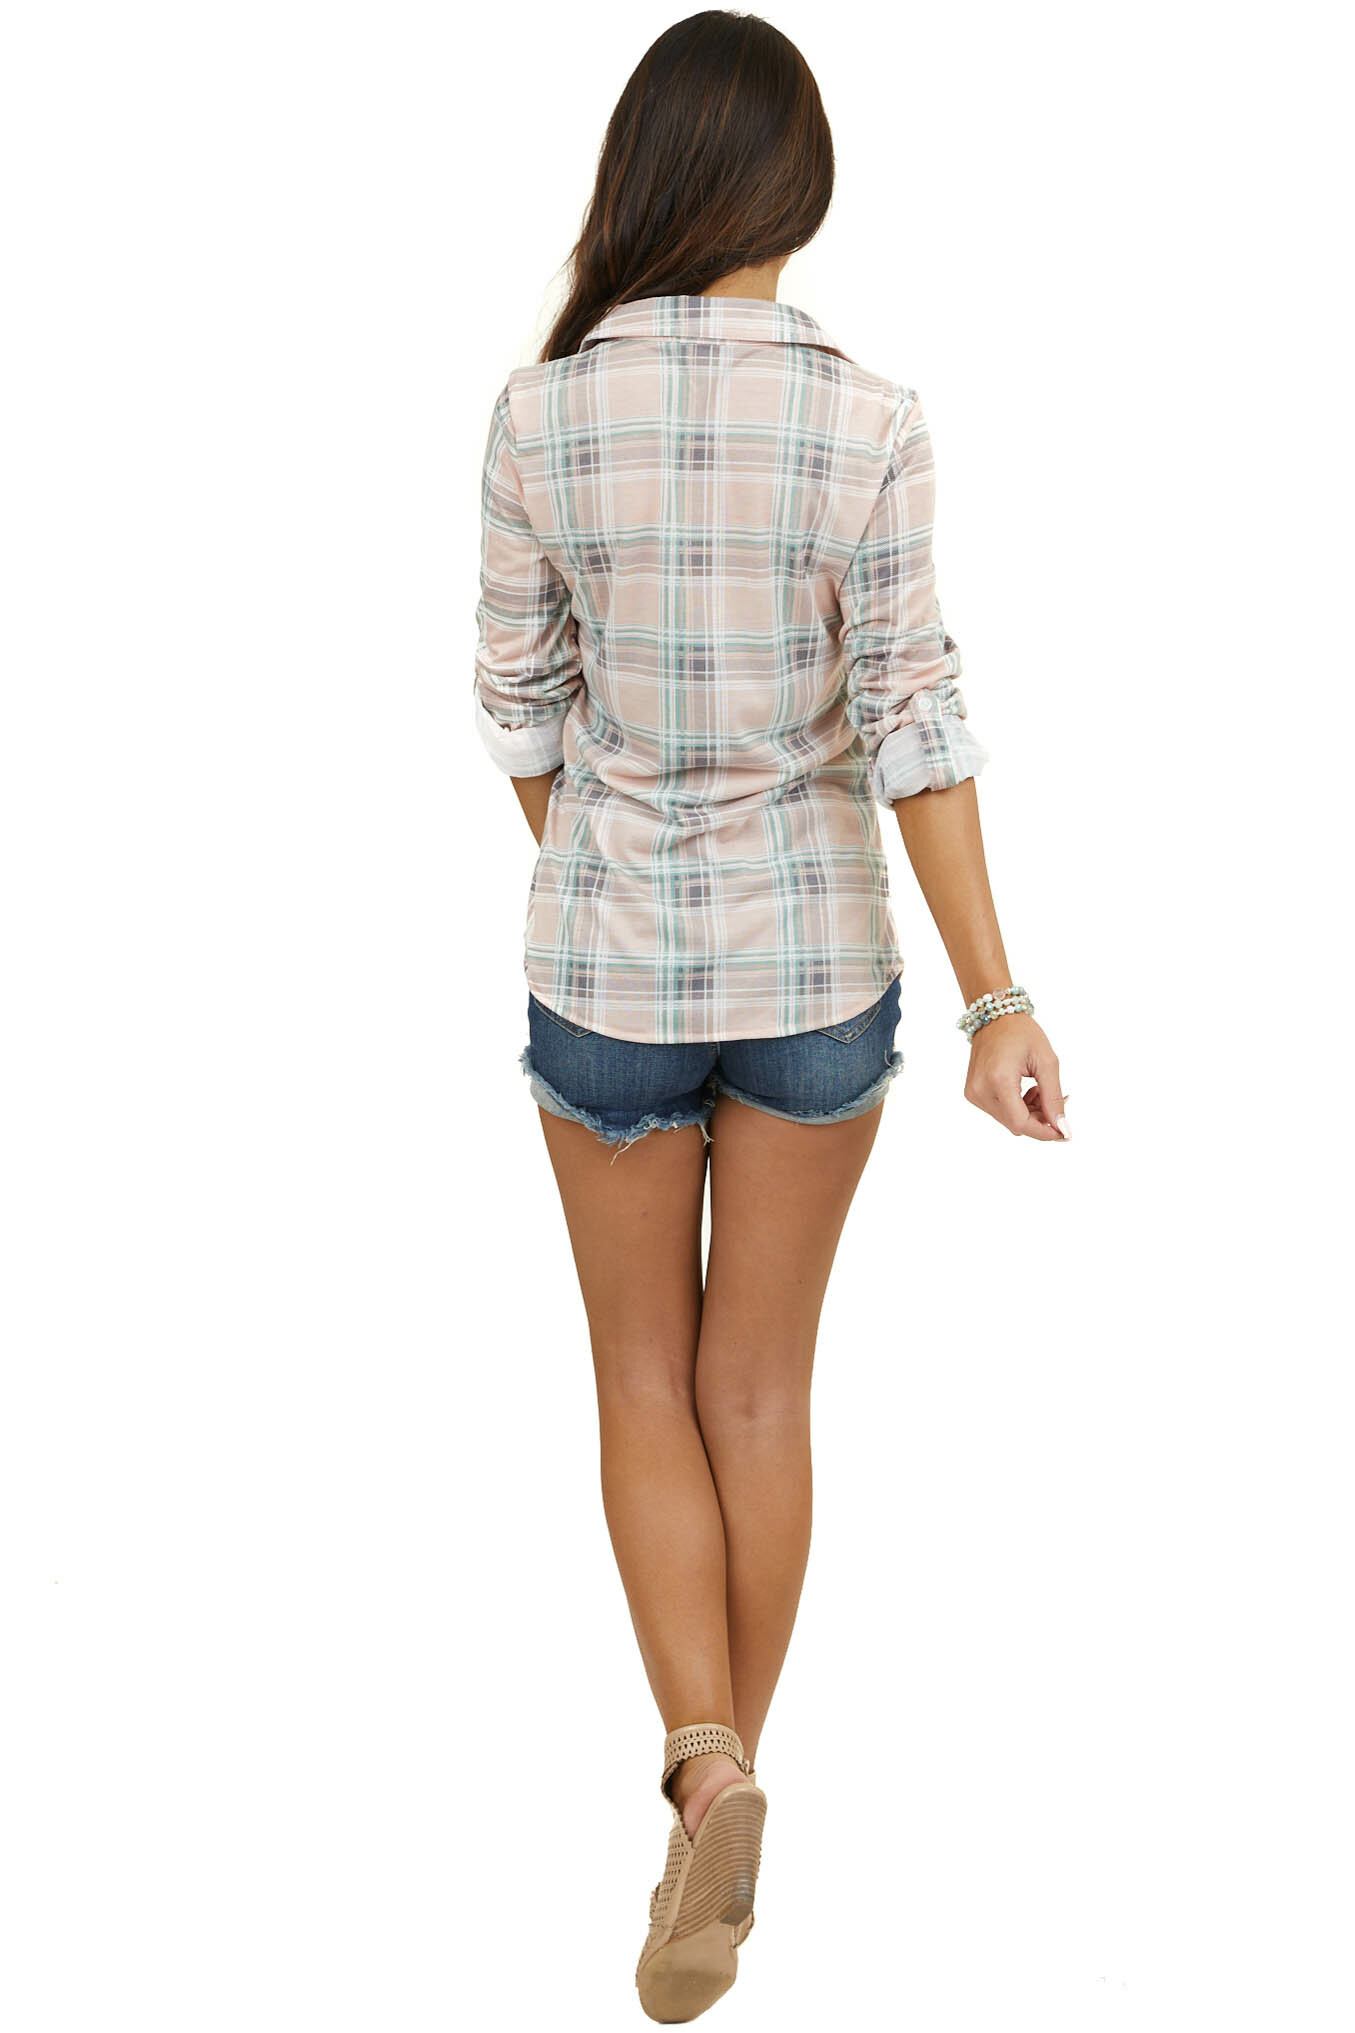 Dusty Blush and Sage Plaid Button Up Top with Chest Pockets